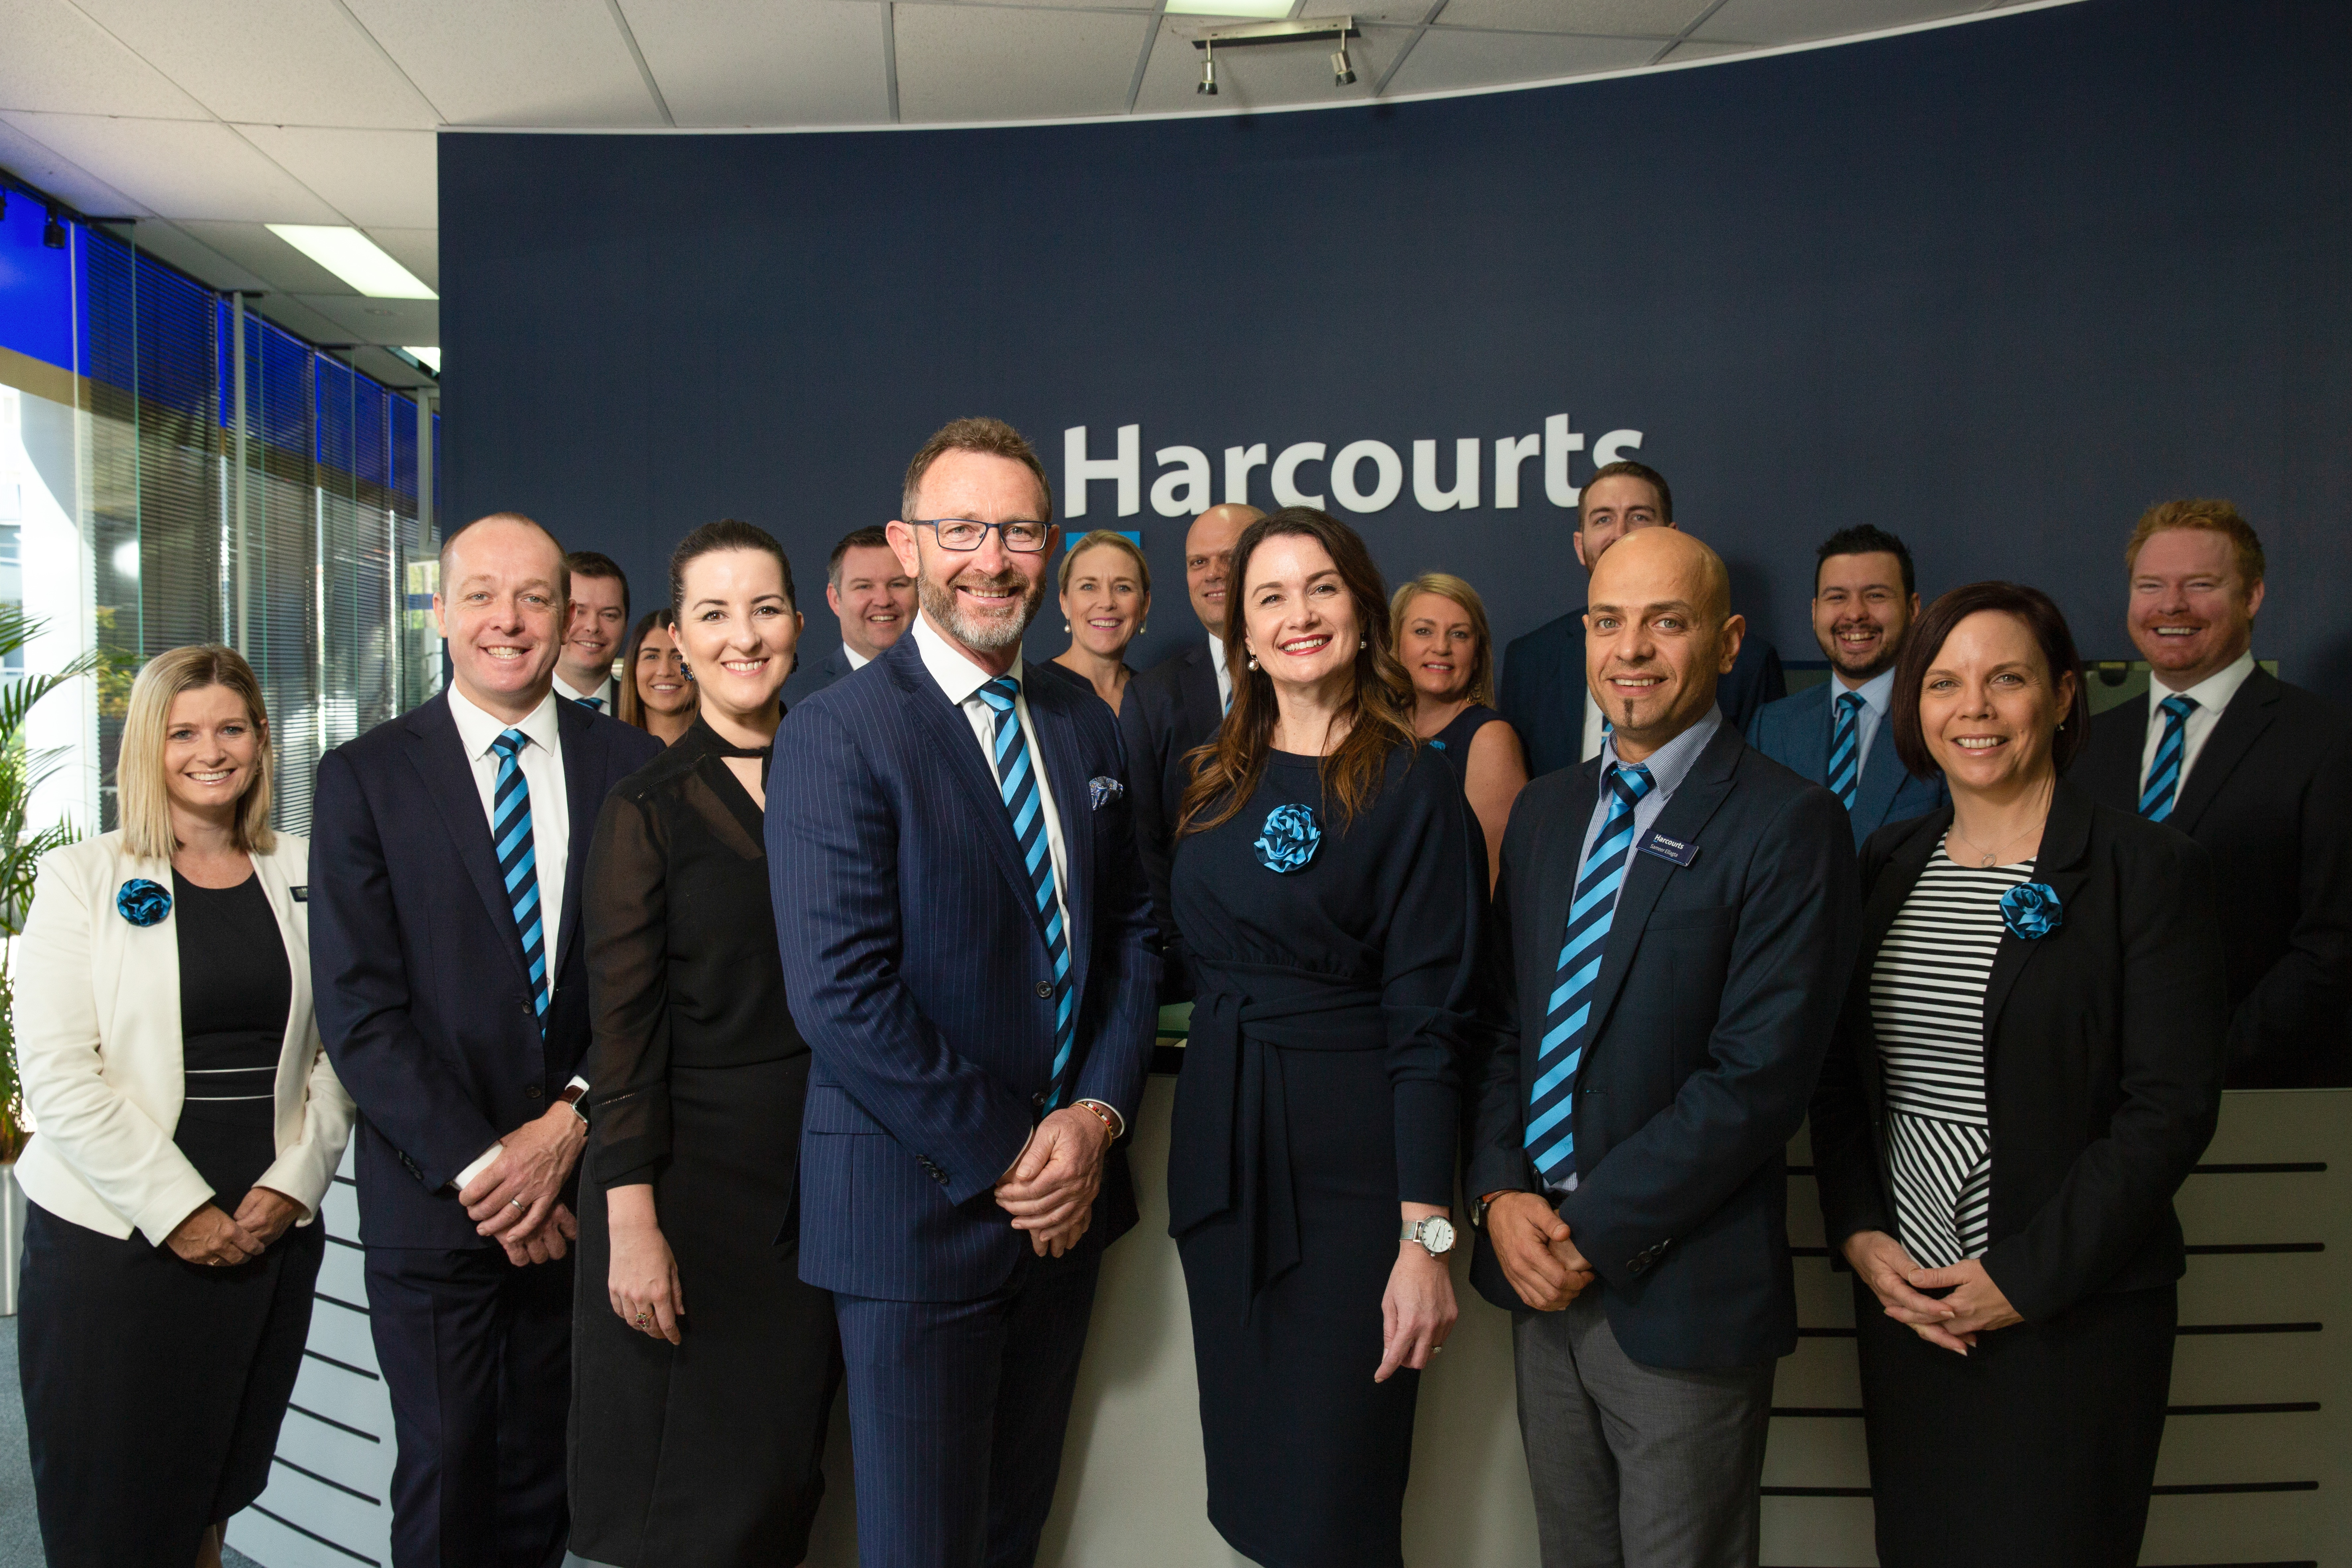 3Bridget Gabites - Harcourts Solutions Group - Brand Marketing Campaign of the Year (Residential) GROUP-